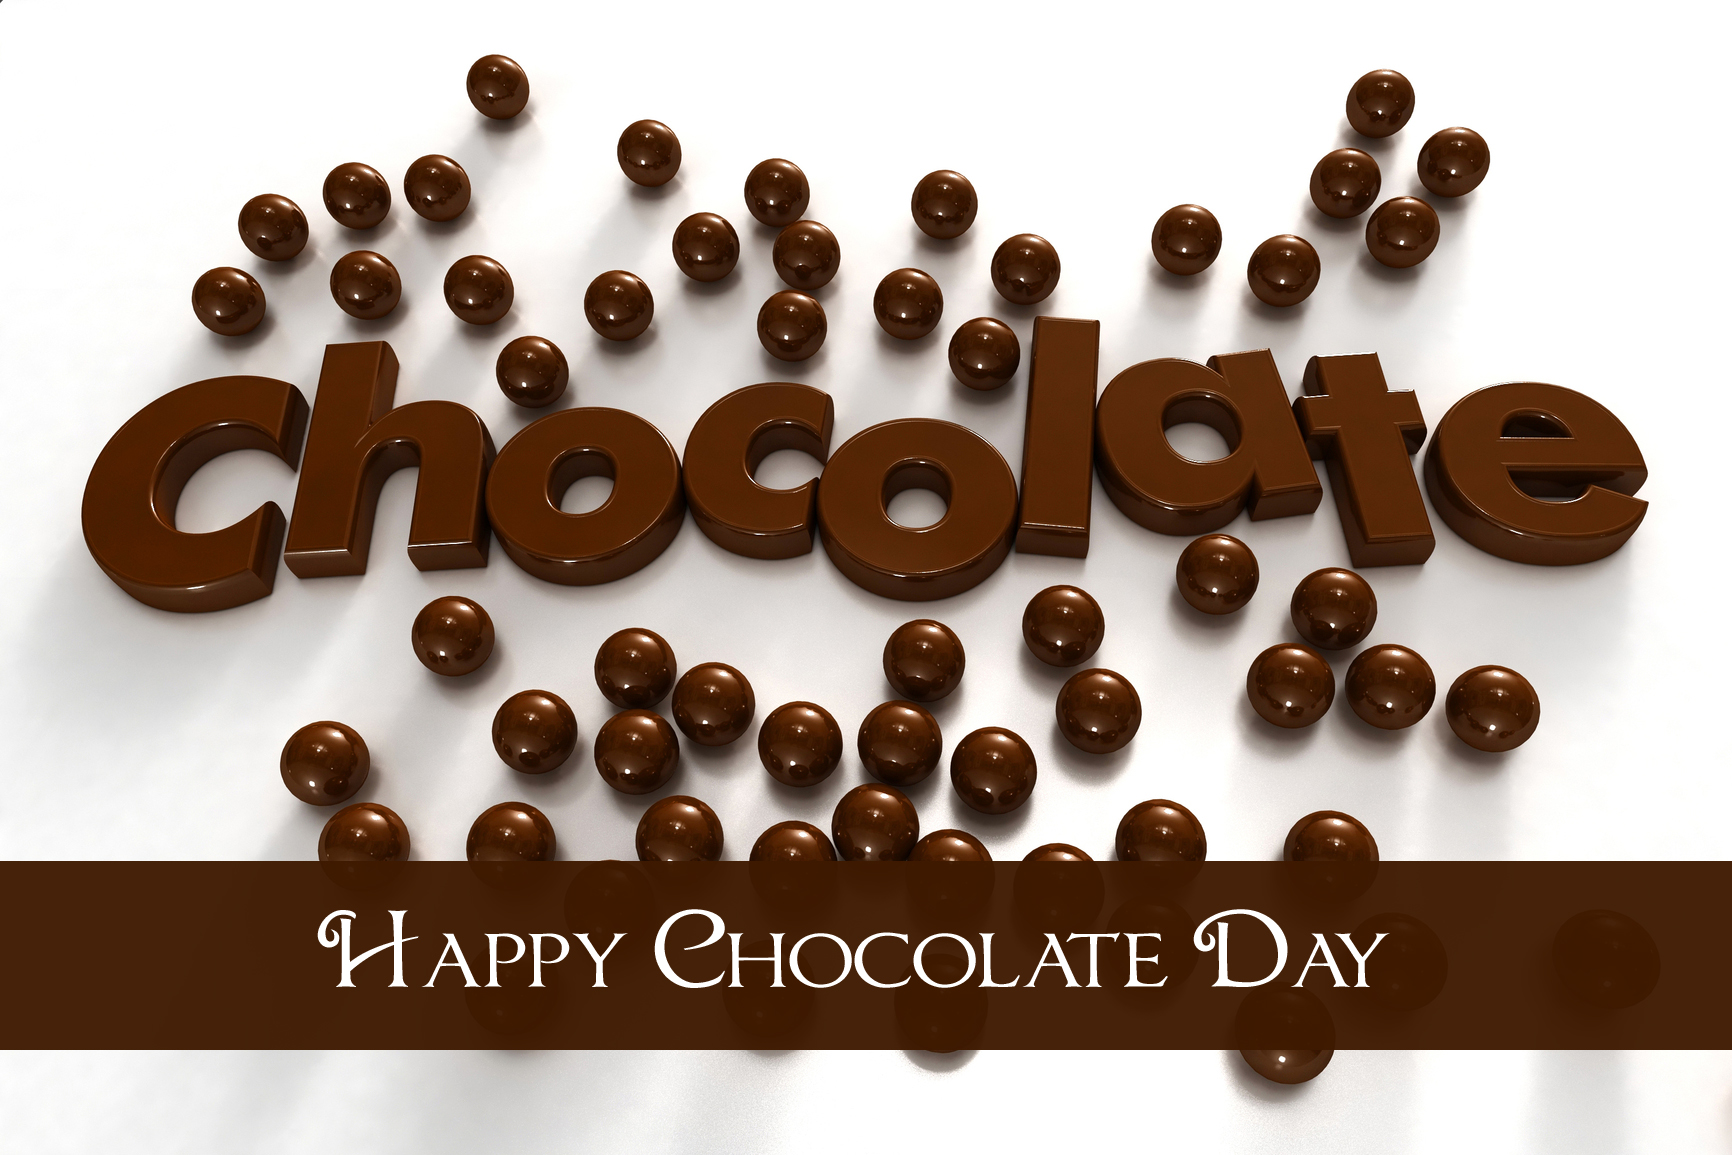 Happy Chocolate Day 2018 HD Image Free Download